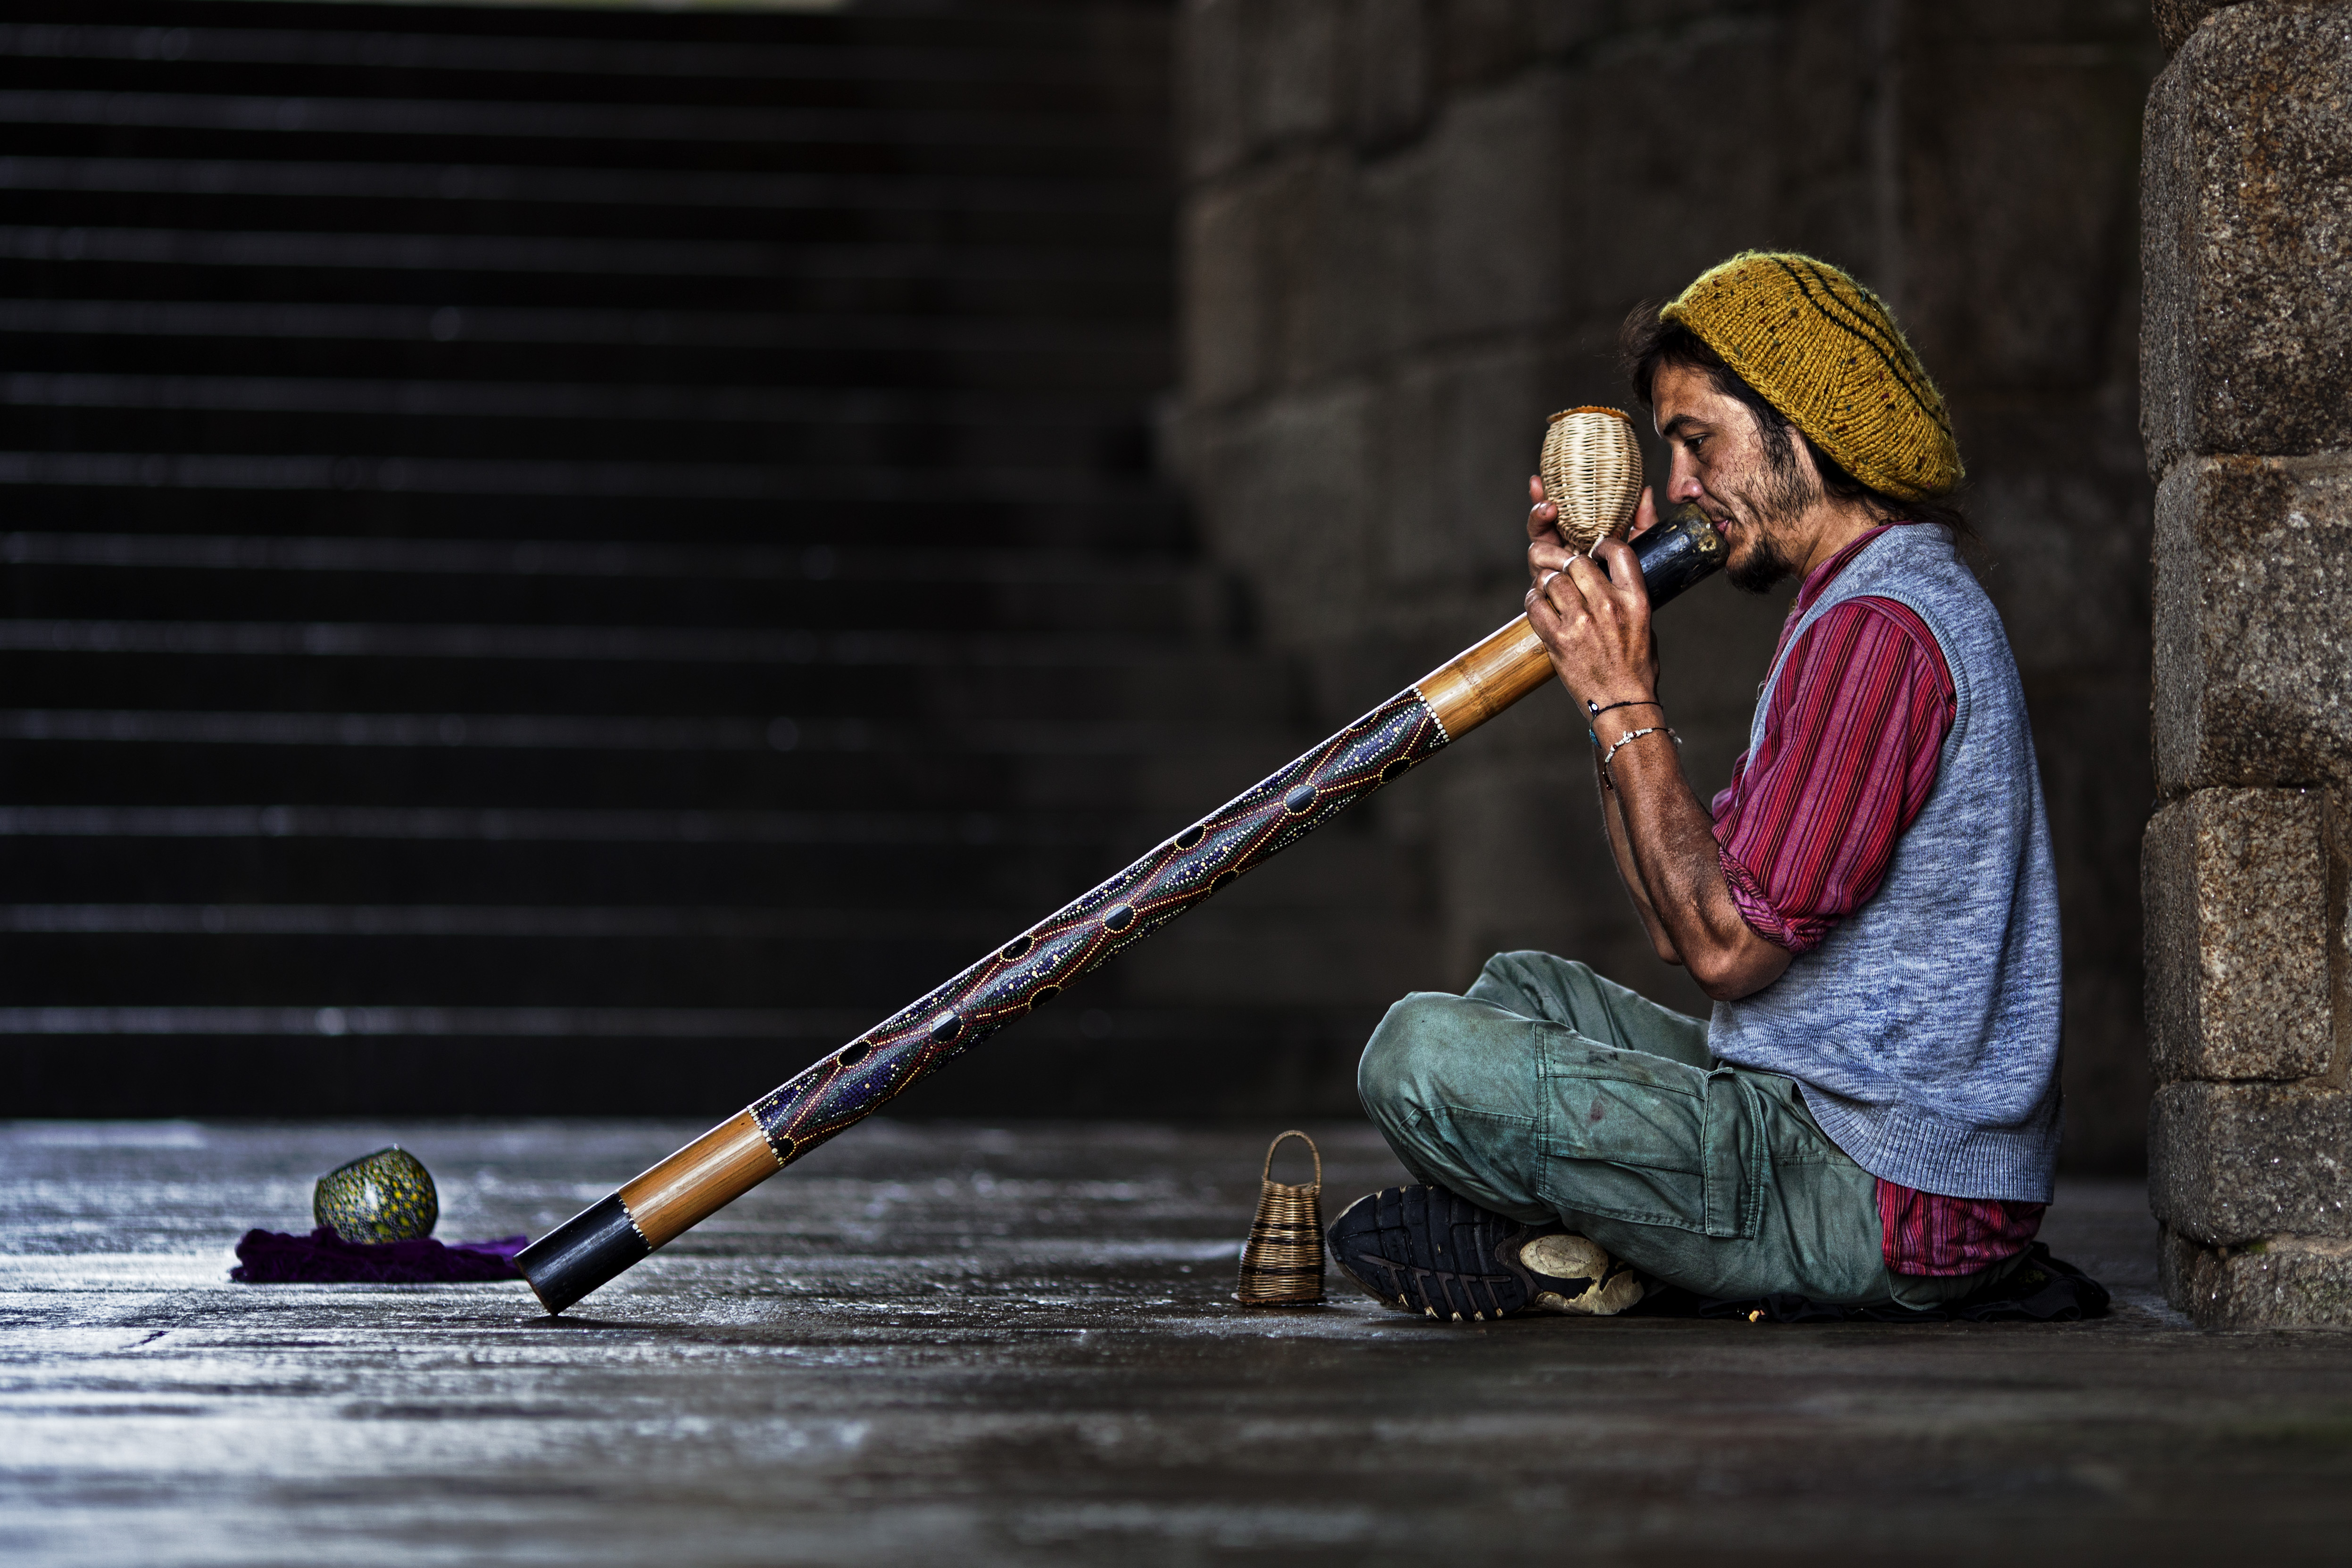 Didgeridoo player entertaining passers by in the street